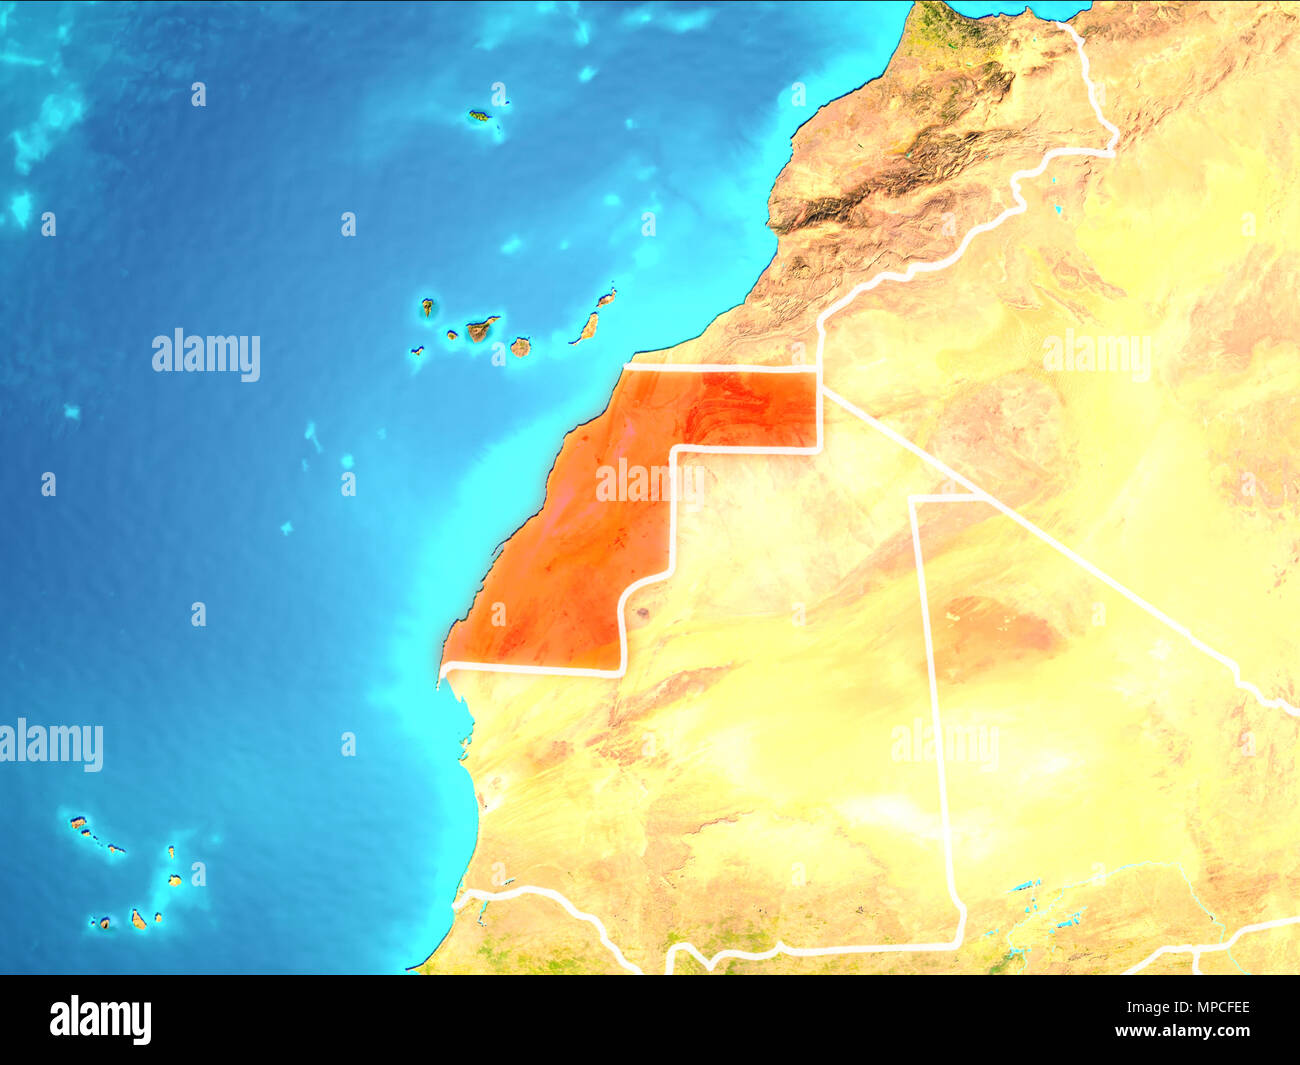 Western Sahara highlighted in red from Earth's orbit. 3D illustration. Elements of this image furnished by NASA. - Stock Image